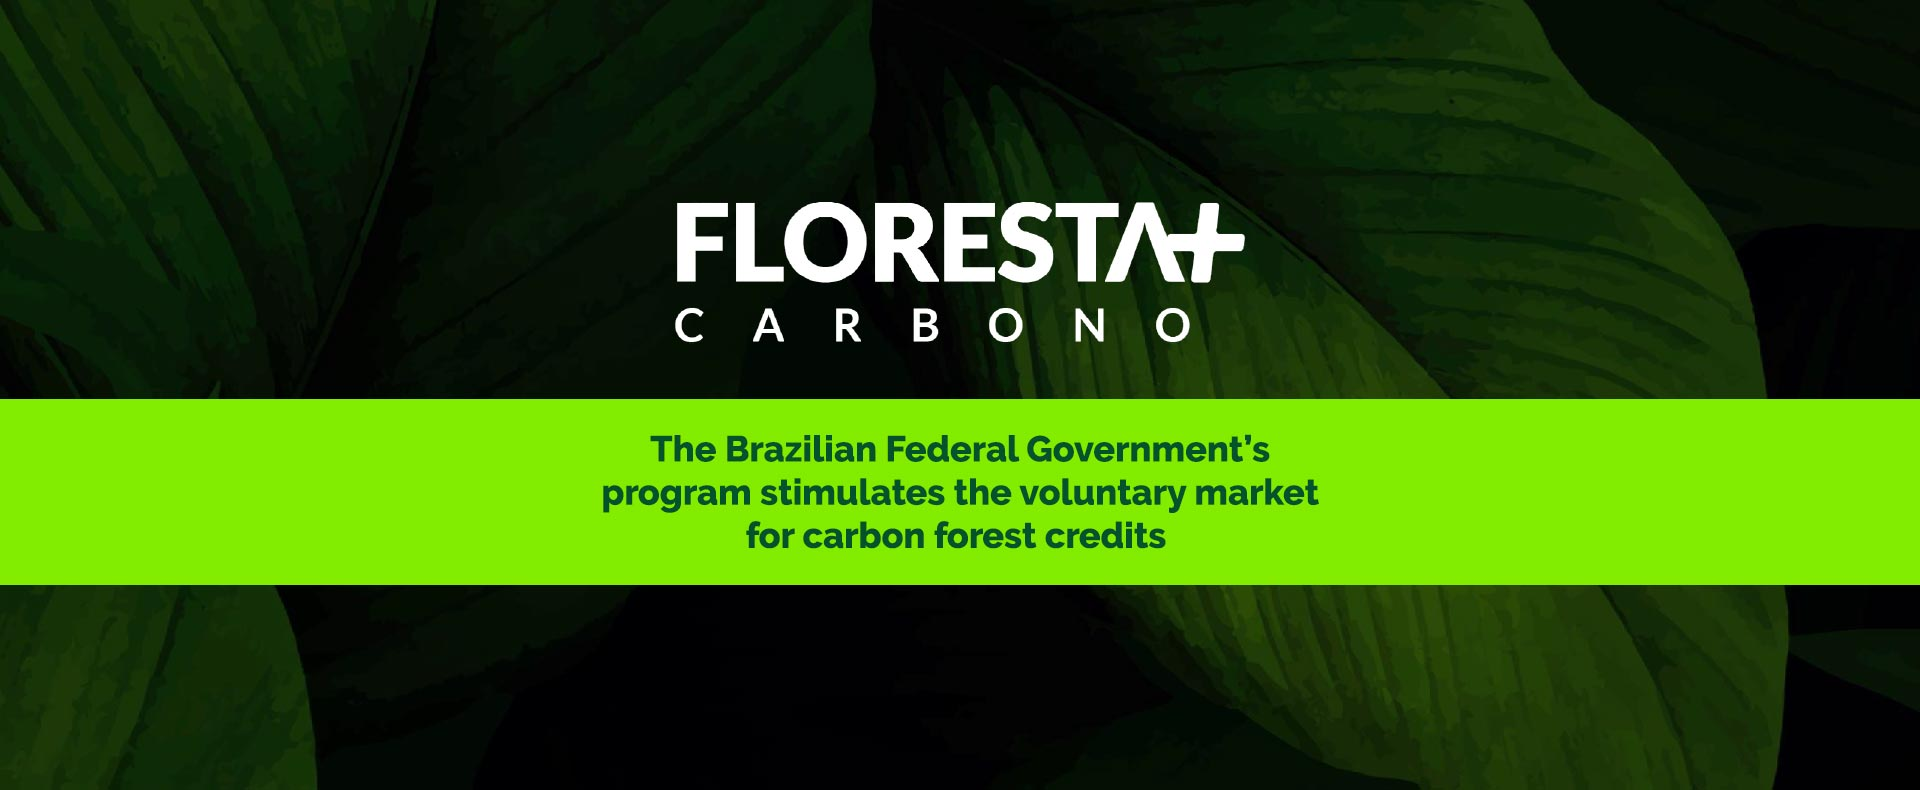 Forest+ CARBON: greater security for buyers and stakeholders of carbon forest offsets from Brazil